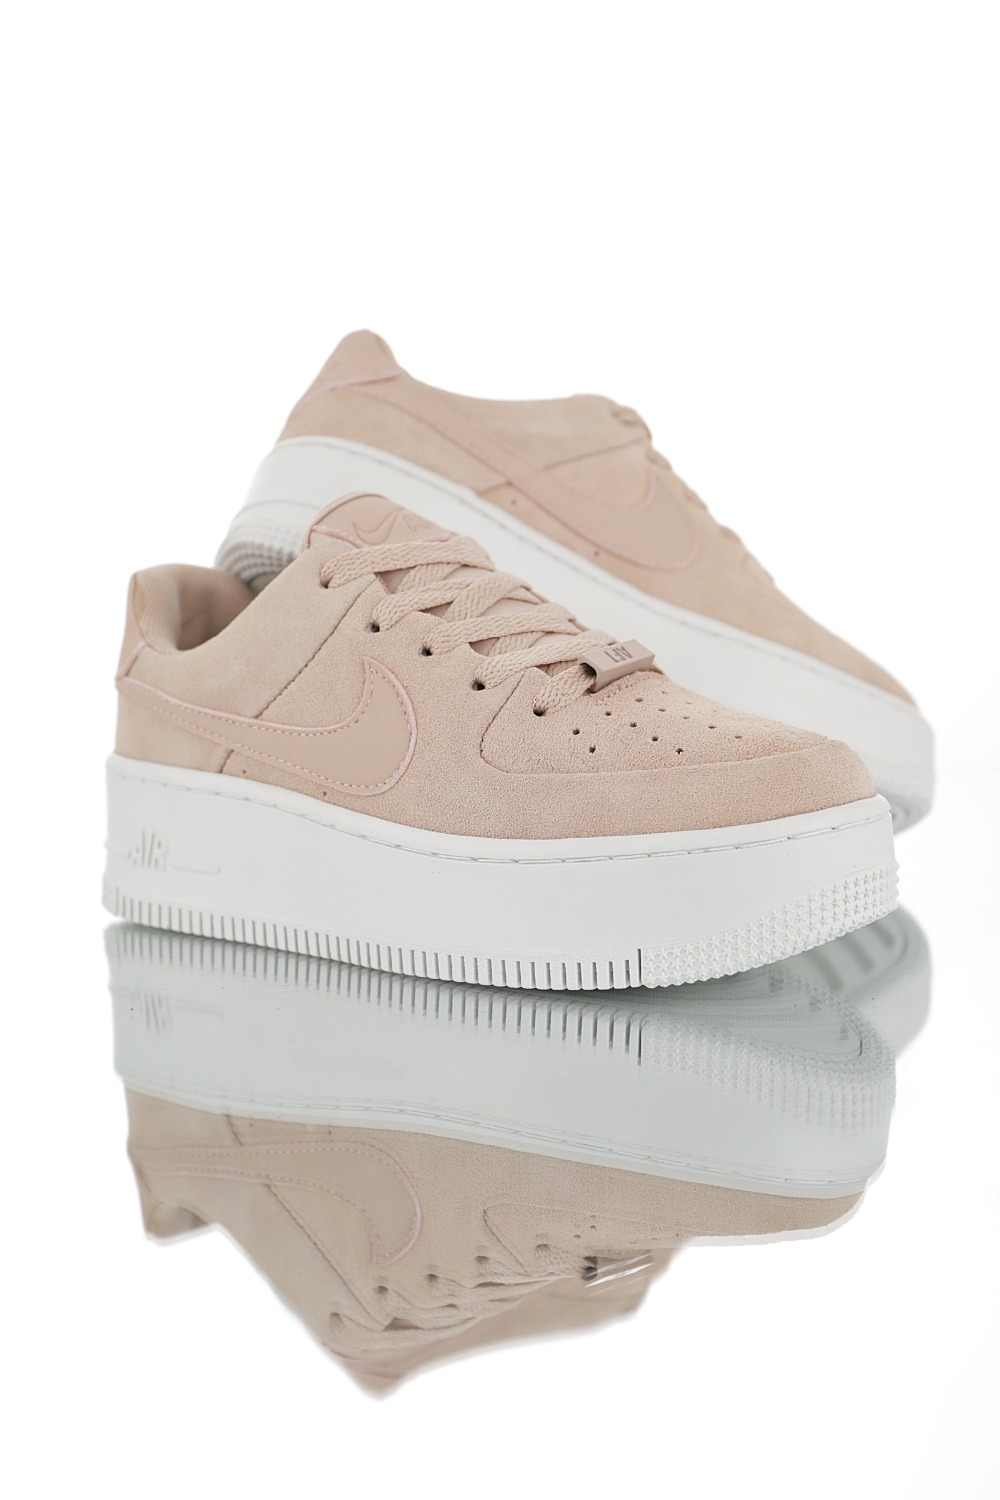 Absorption Nike Outdoor Shoes Original Skateboarding Shock Air Arrival 1 Low New Sage Women's Sneakers Force Wmns b67gyYf